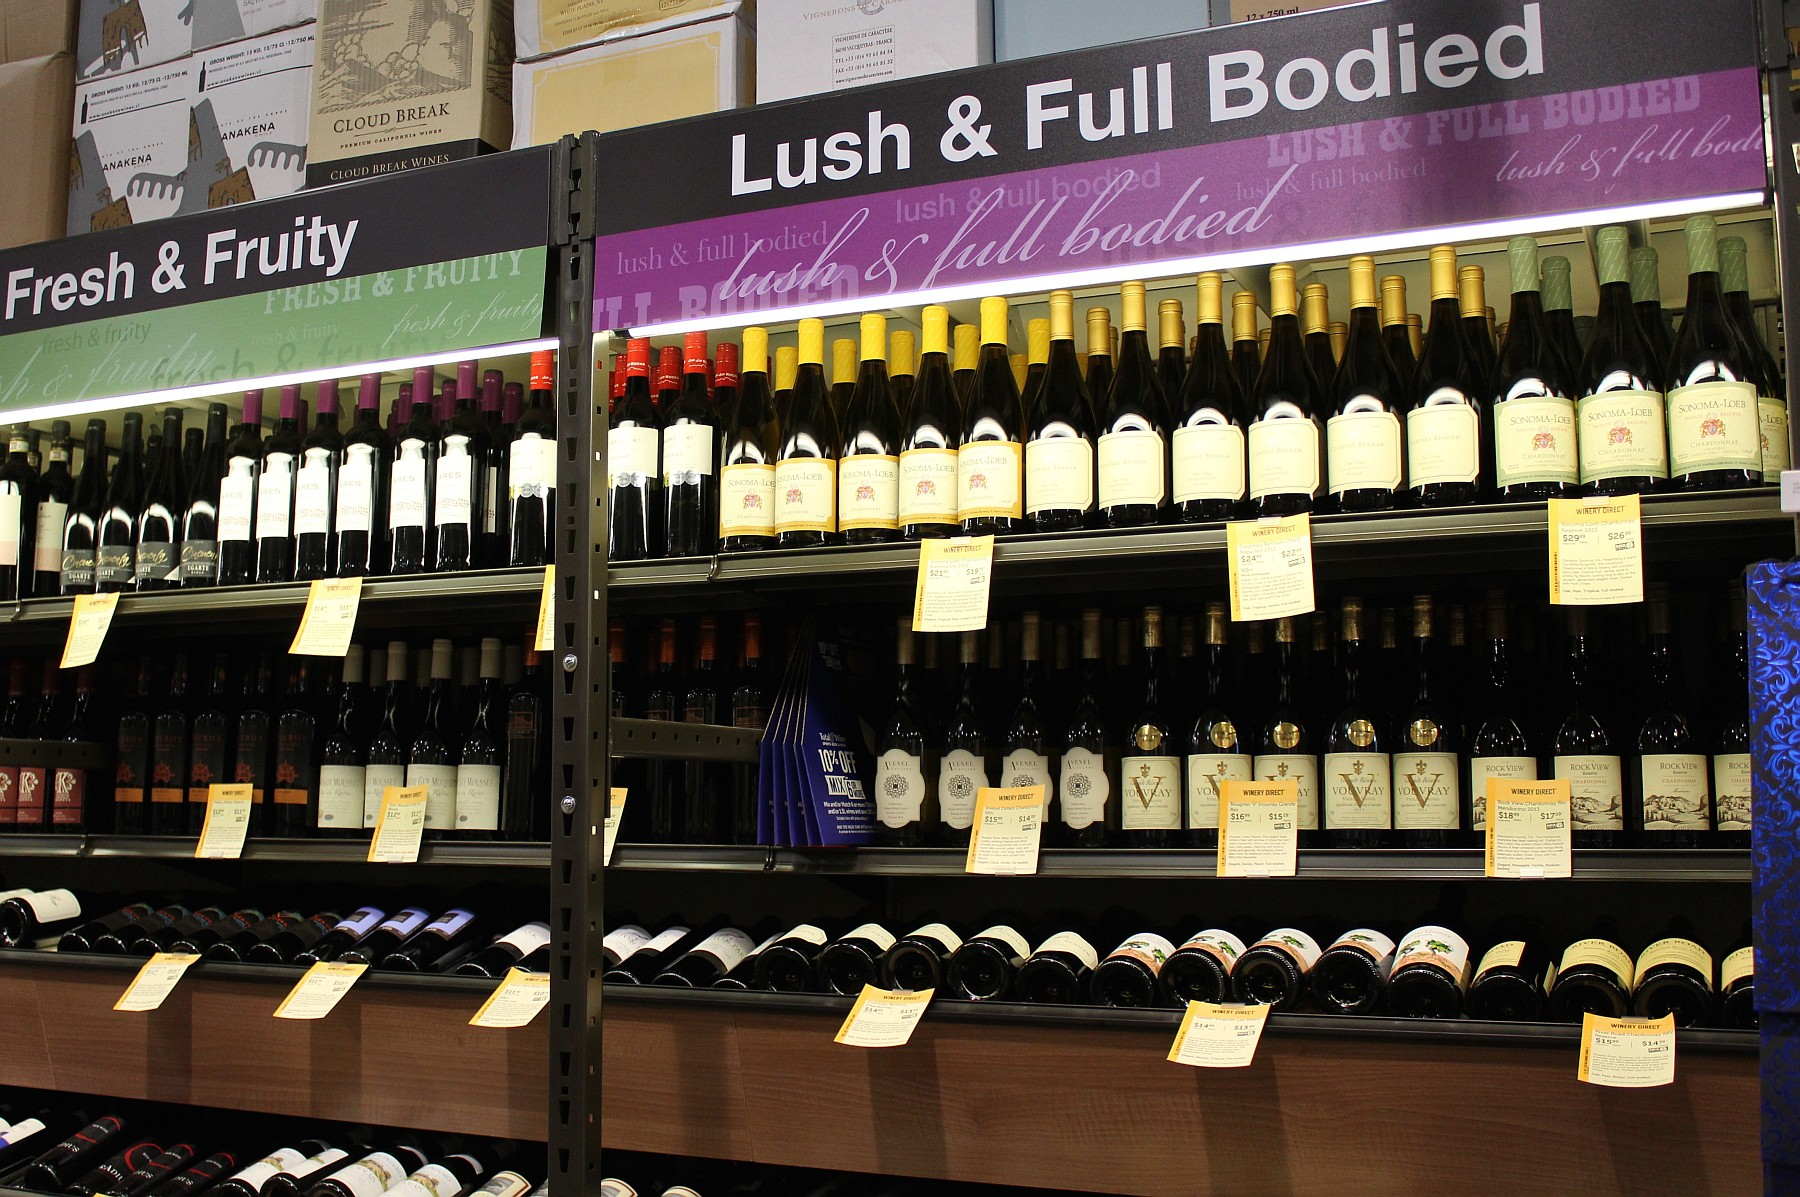 Total Wine wines by taste